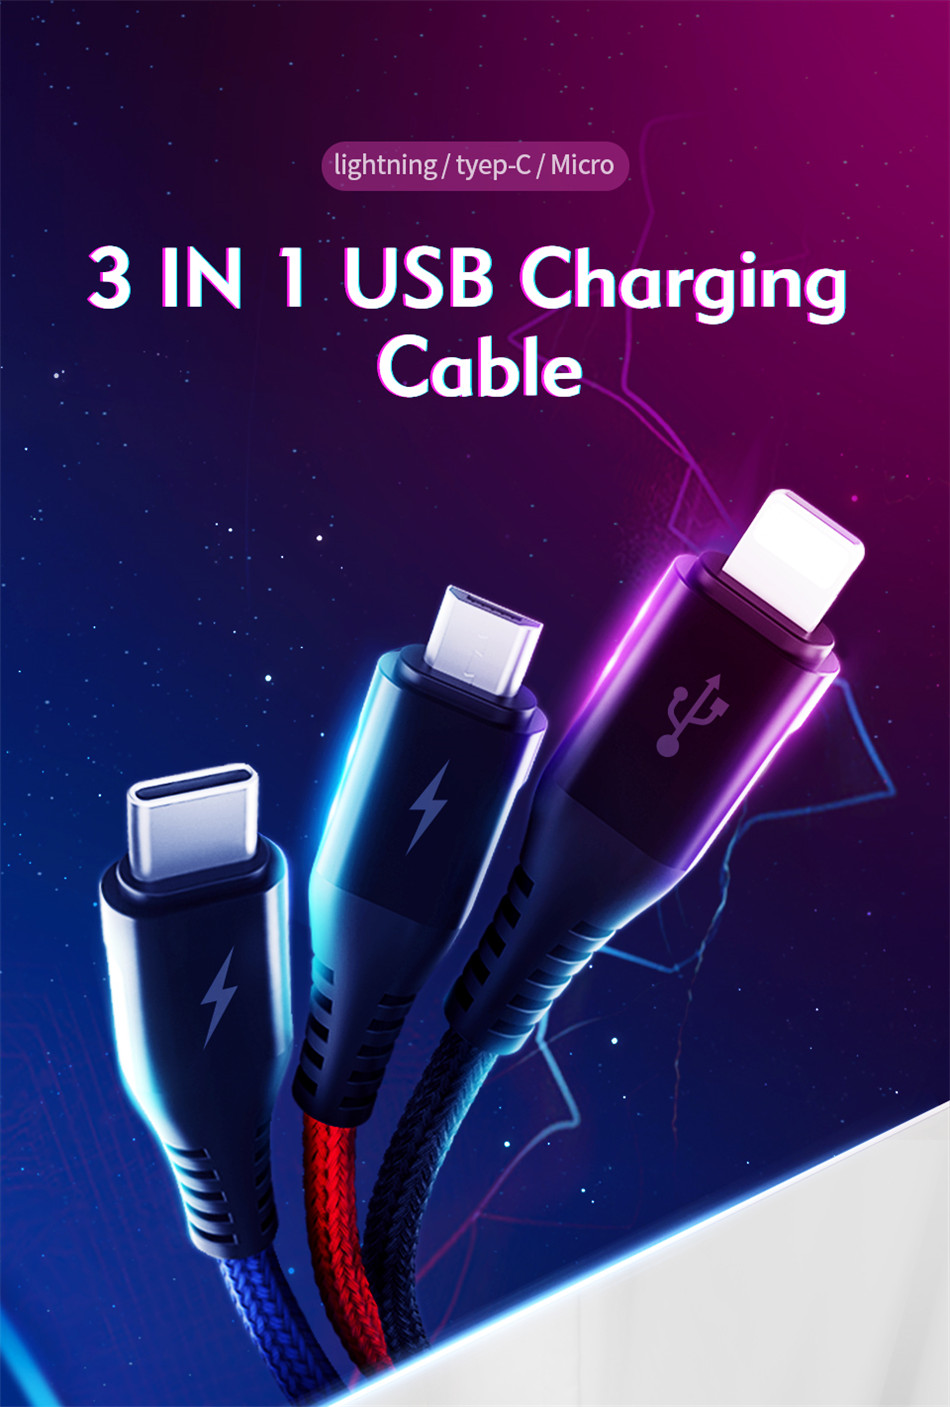 Benks Universal 3 In 1 Lighting Charger Cable For iPhone X 7 8 6 Plus Micro USB Type C For Oneplus Xiaomi 5 Phone Charging Cable (1)